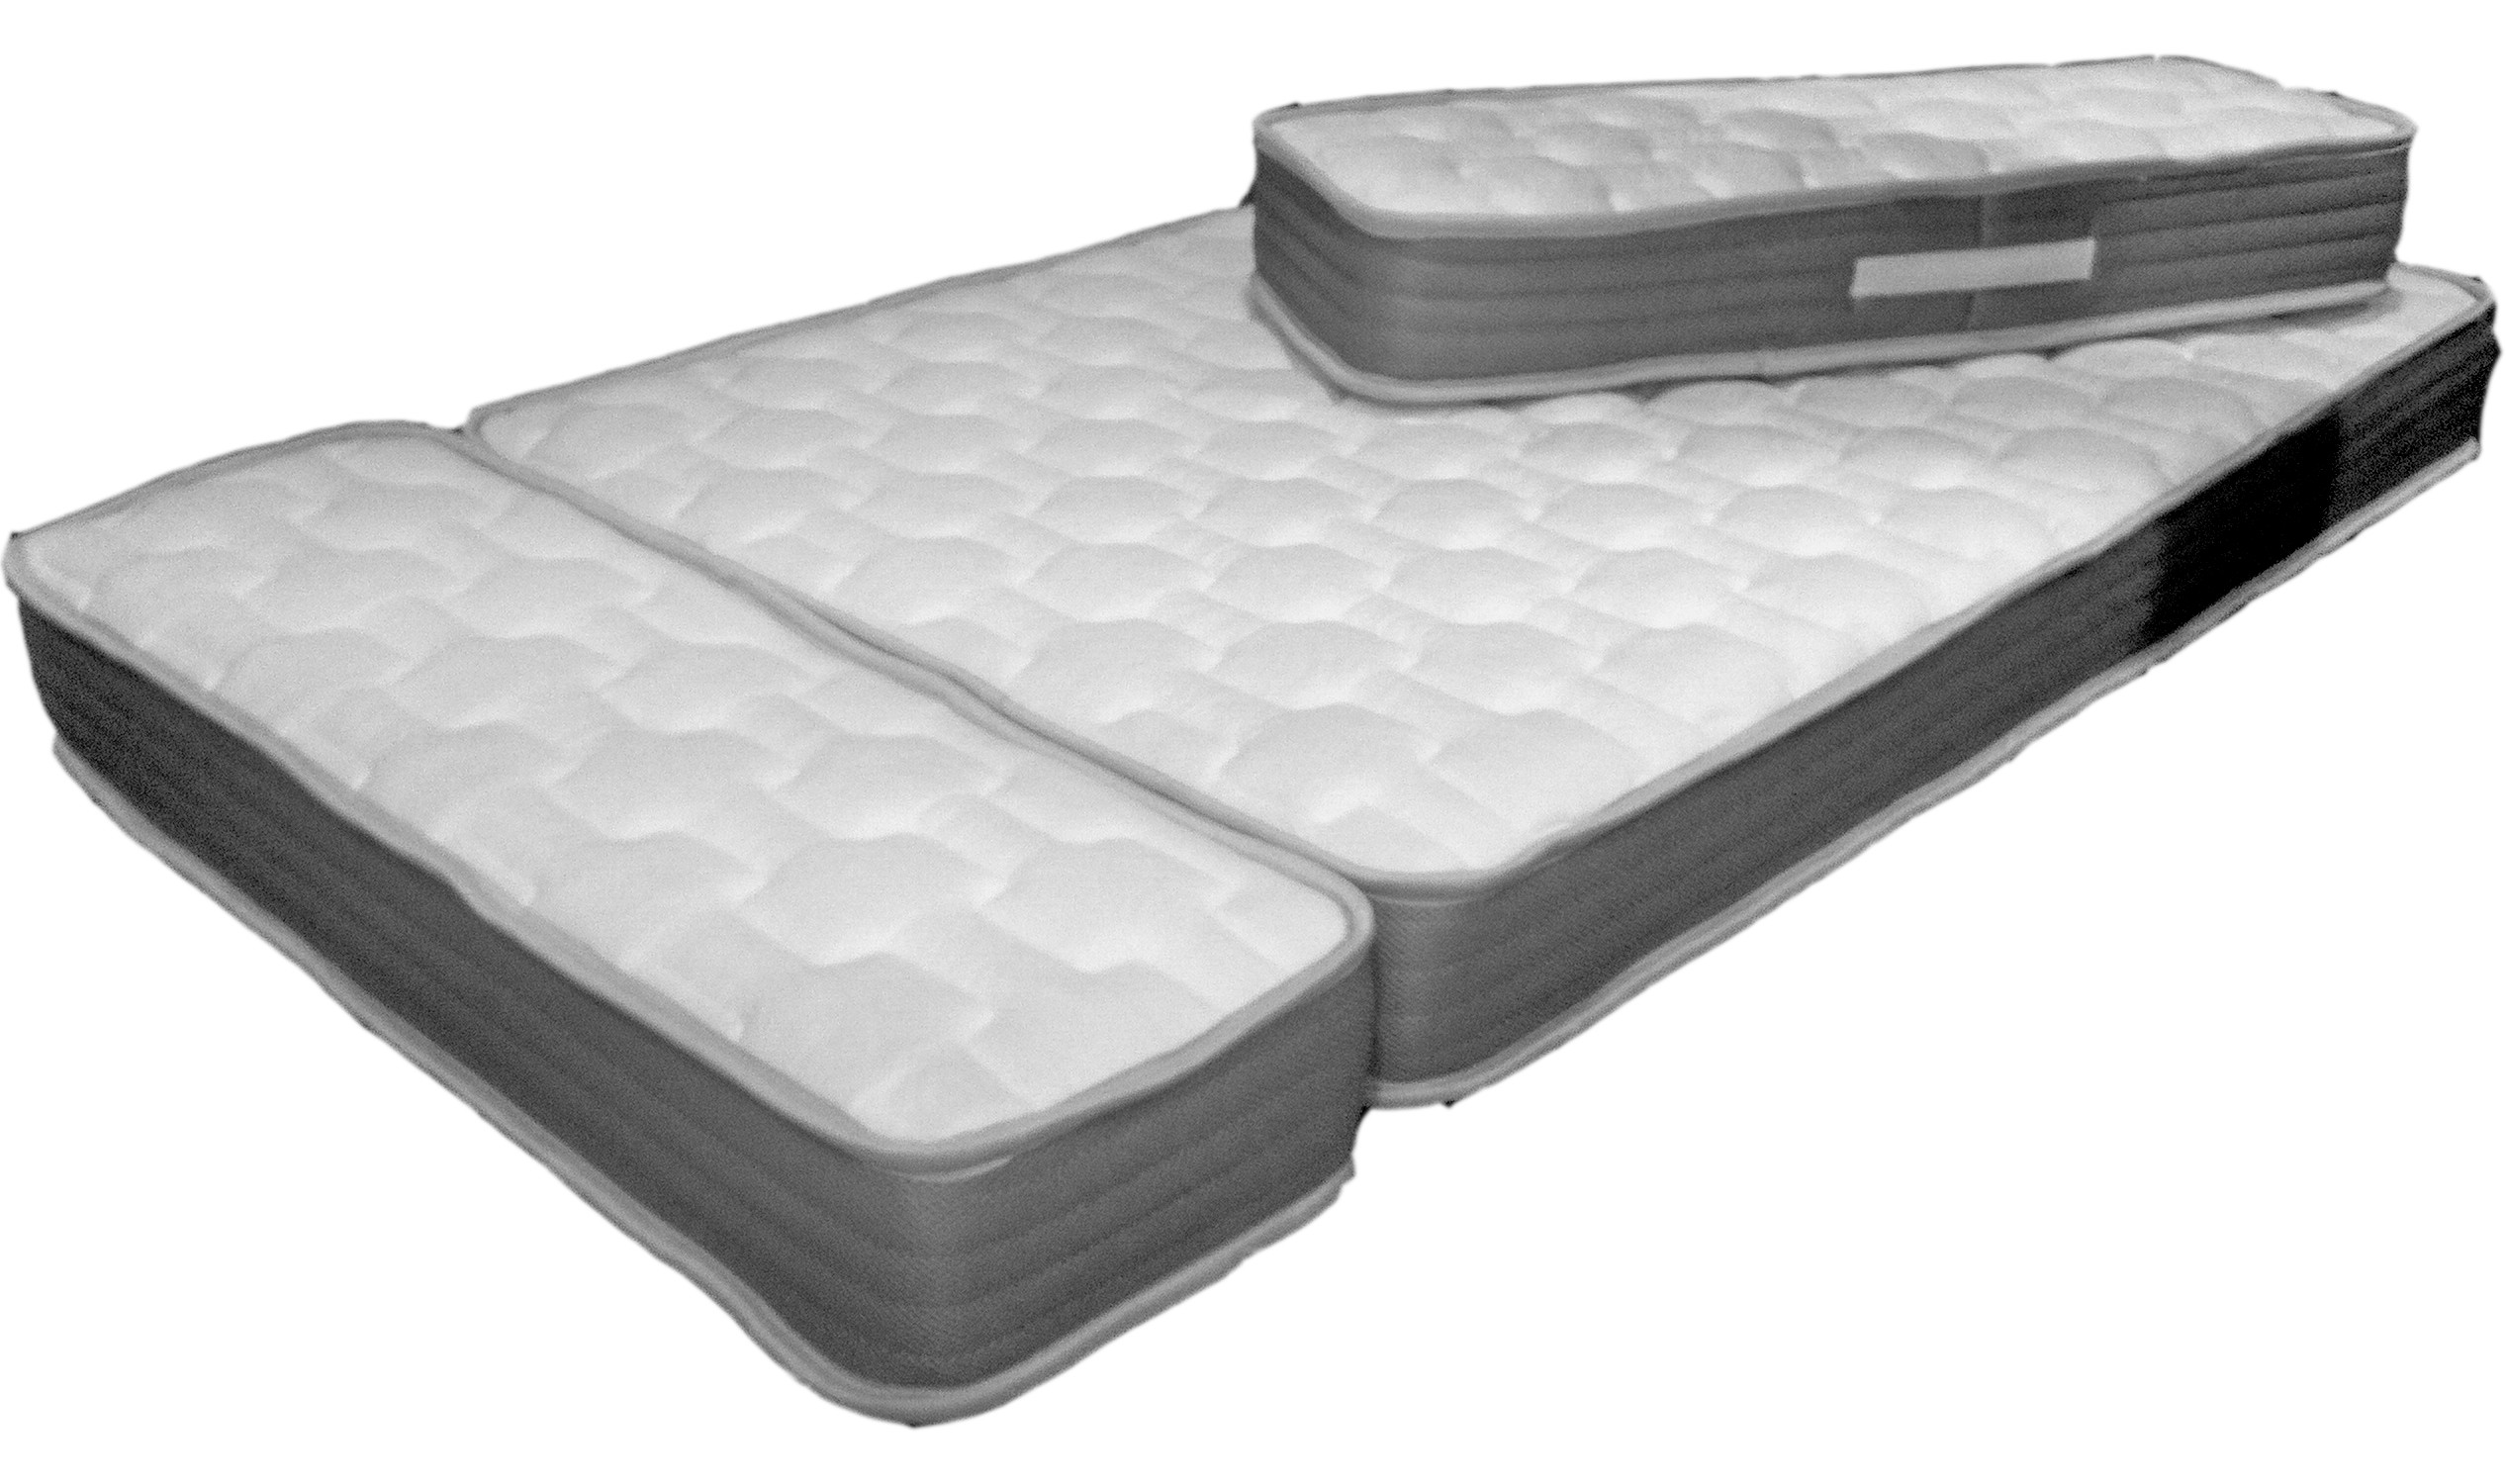 comparer matelas mousse 90x140 170 200 cm bultex little max evolutif avec pour acheter. Black Bedroom Furniture Sets. Home Design Ideas